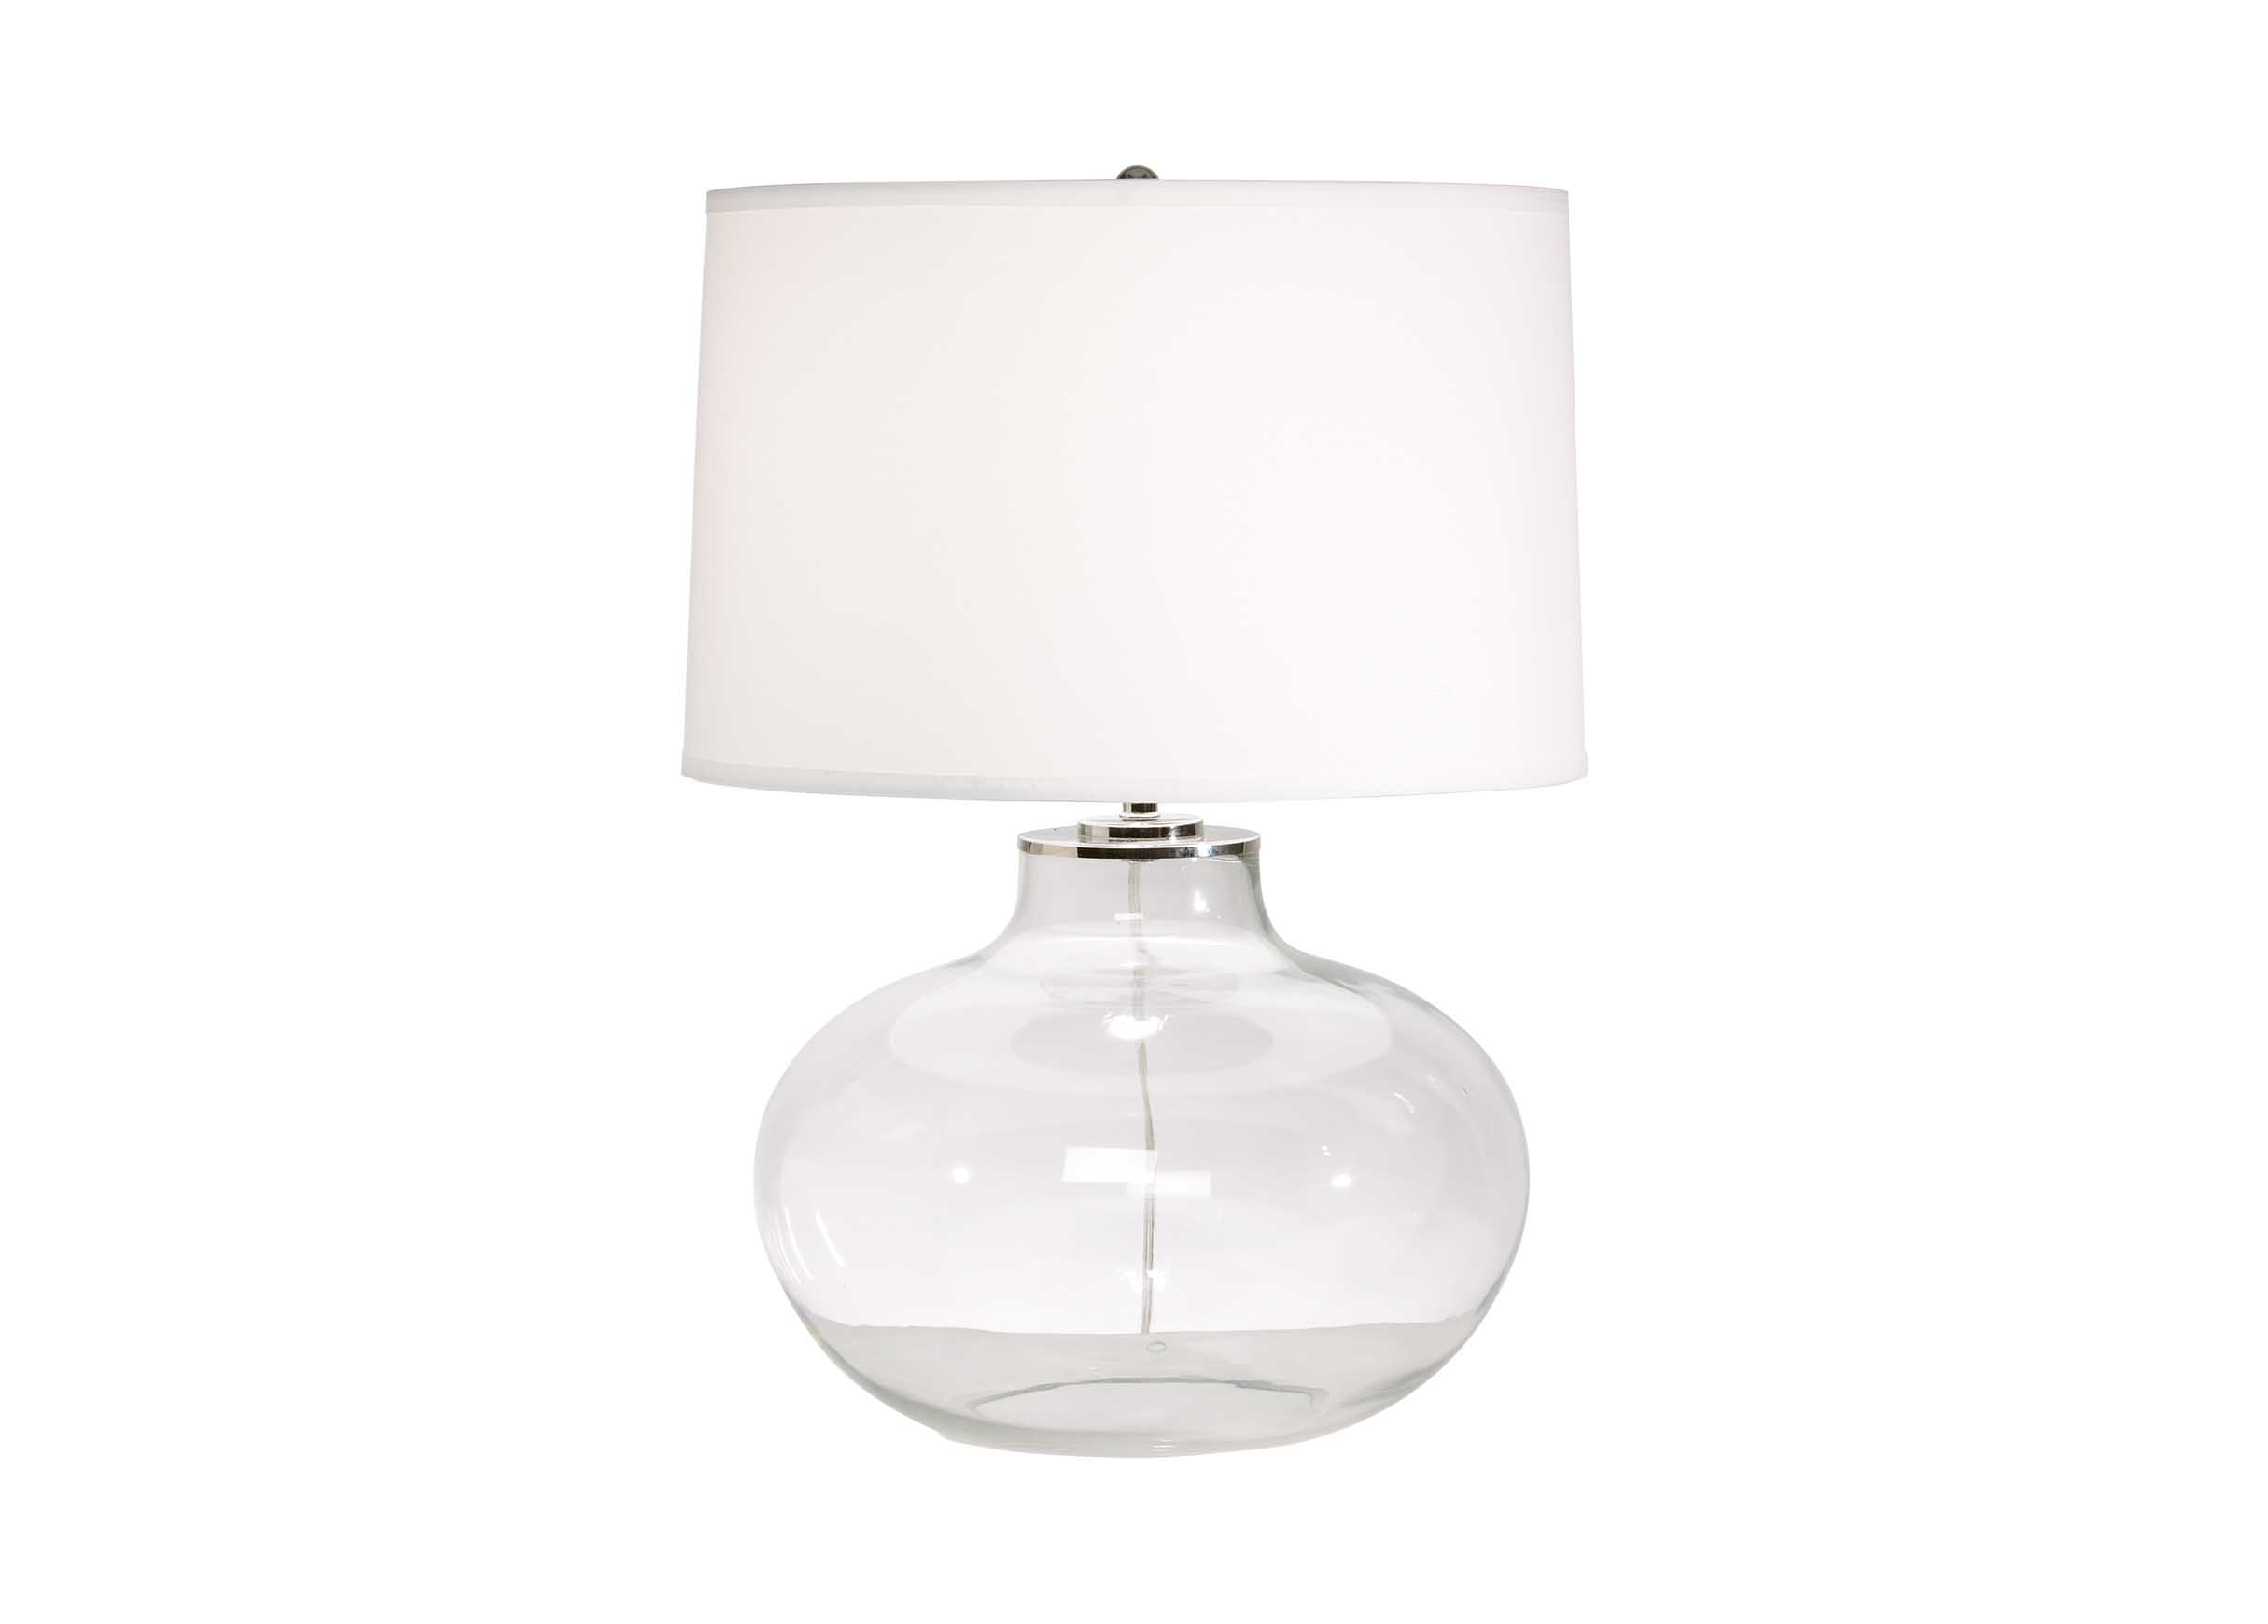 Large onion jar table lamp table lamps sitegenesis 10112 images large onion jar table lamp largegray geotapseo Gallery